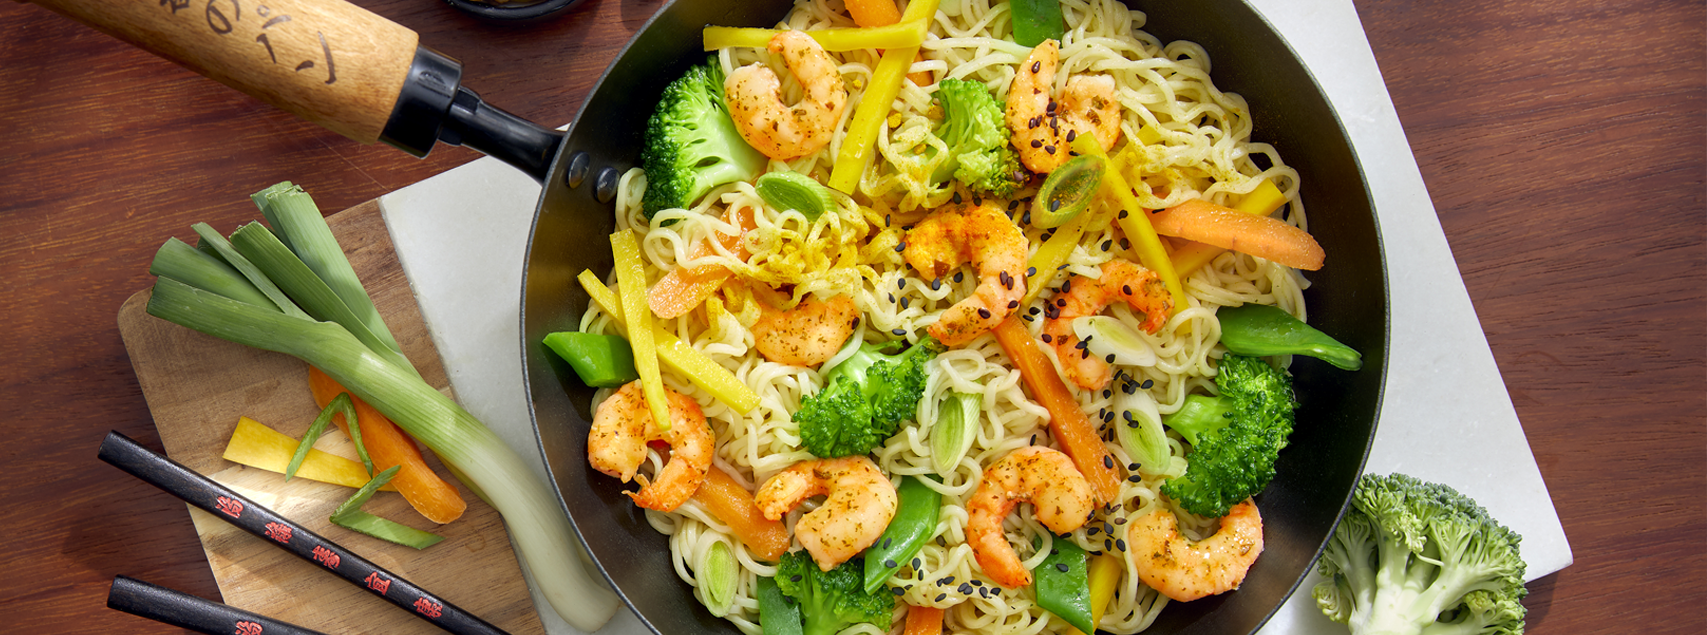 Pan of Chinese noodles with marinated prawns